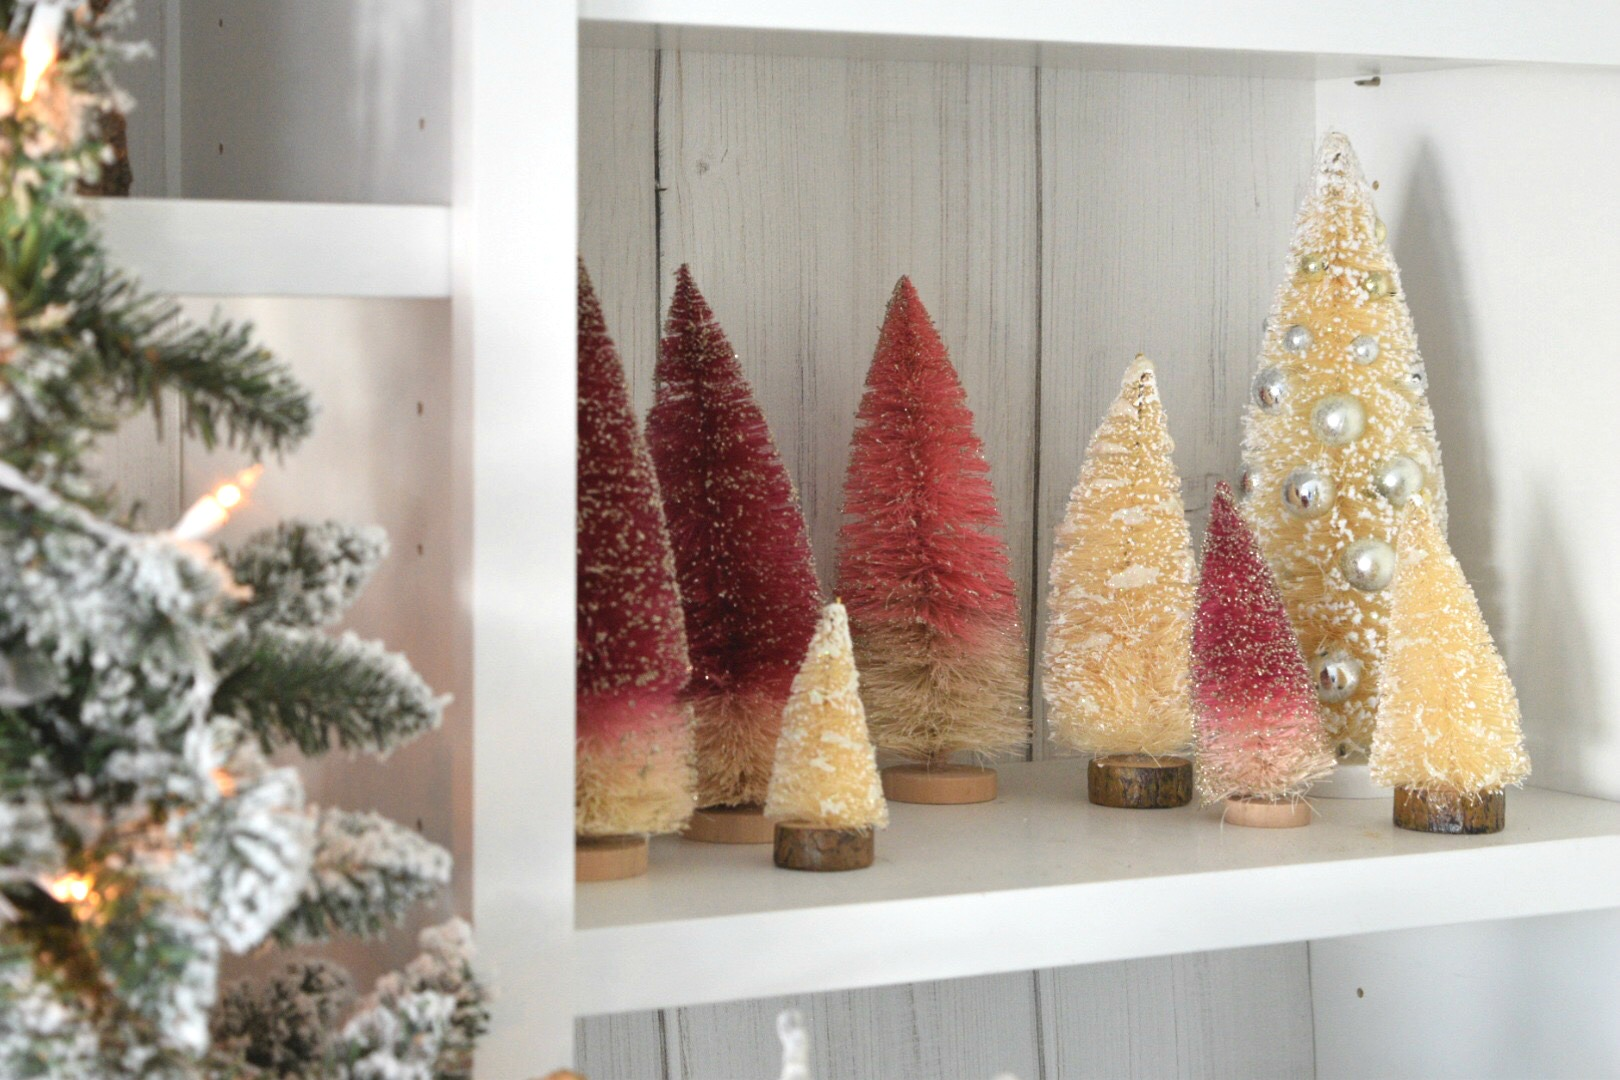 Christmas Tree Decor- in our Small Family Room